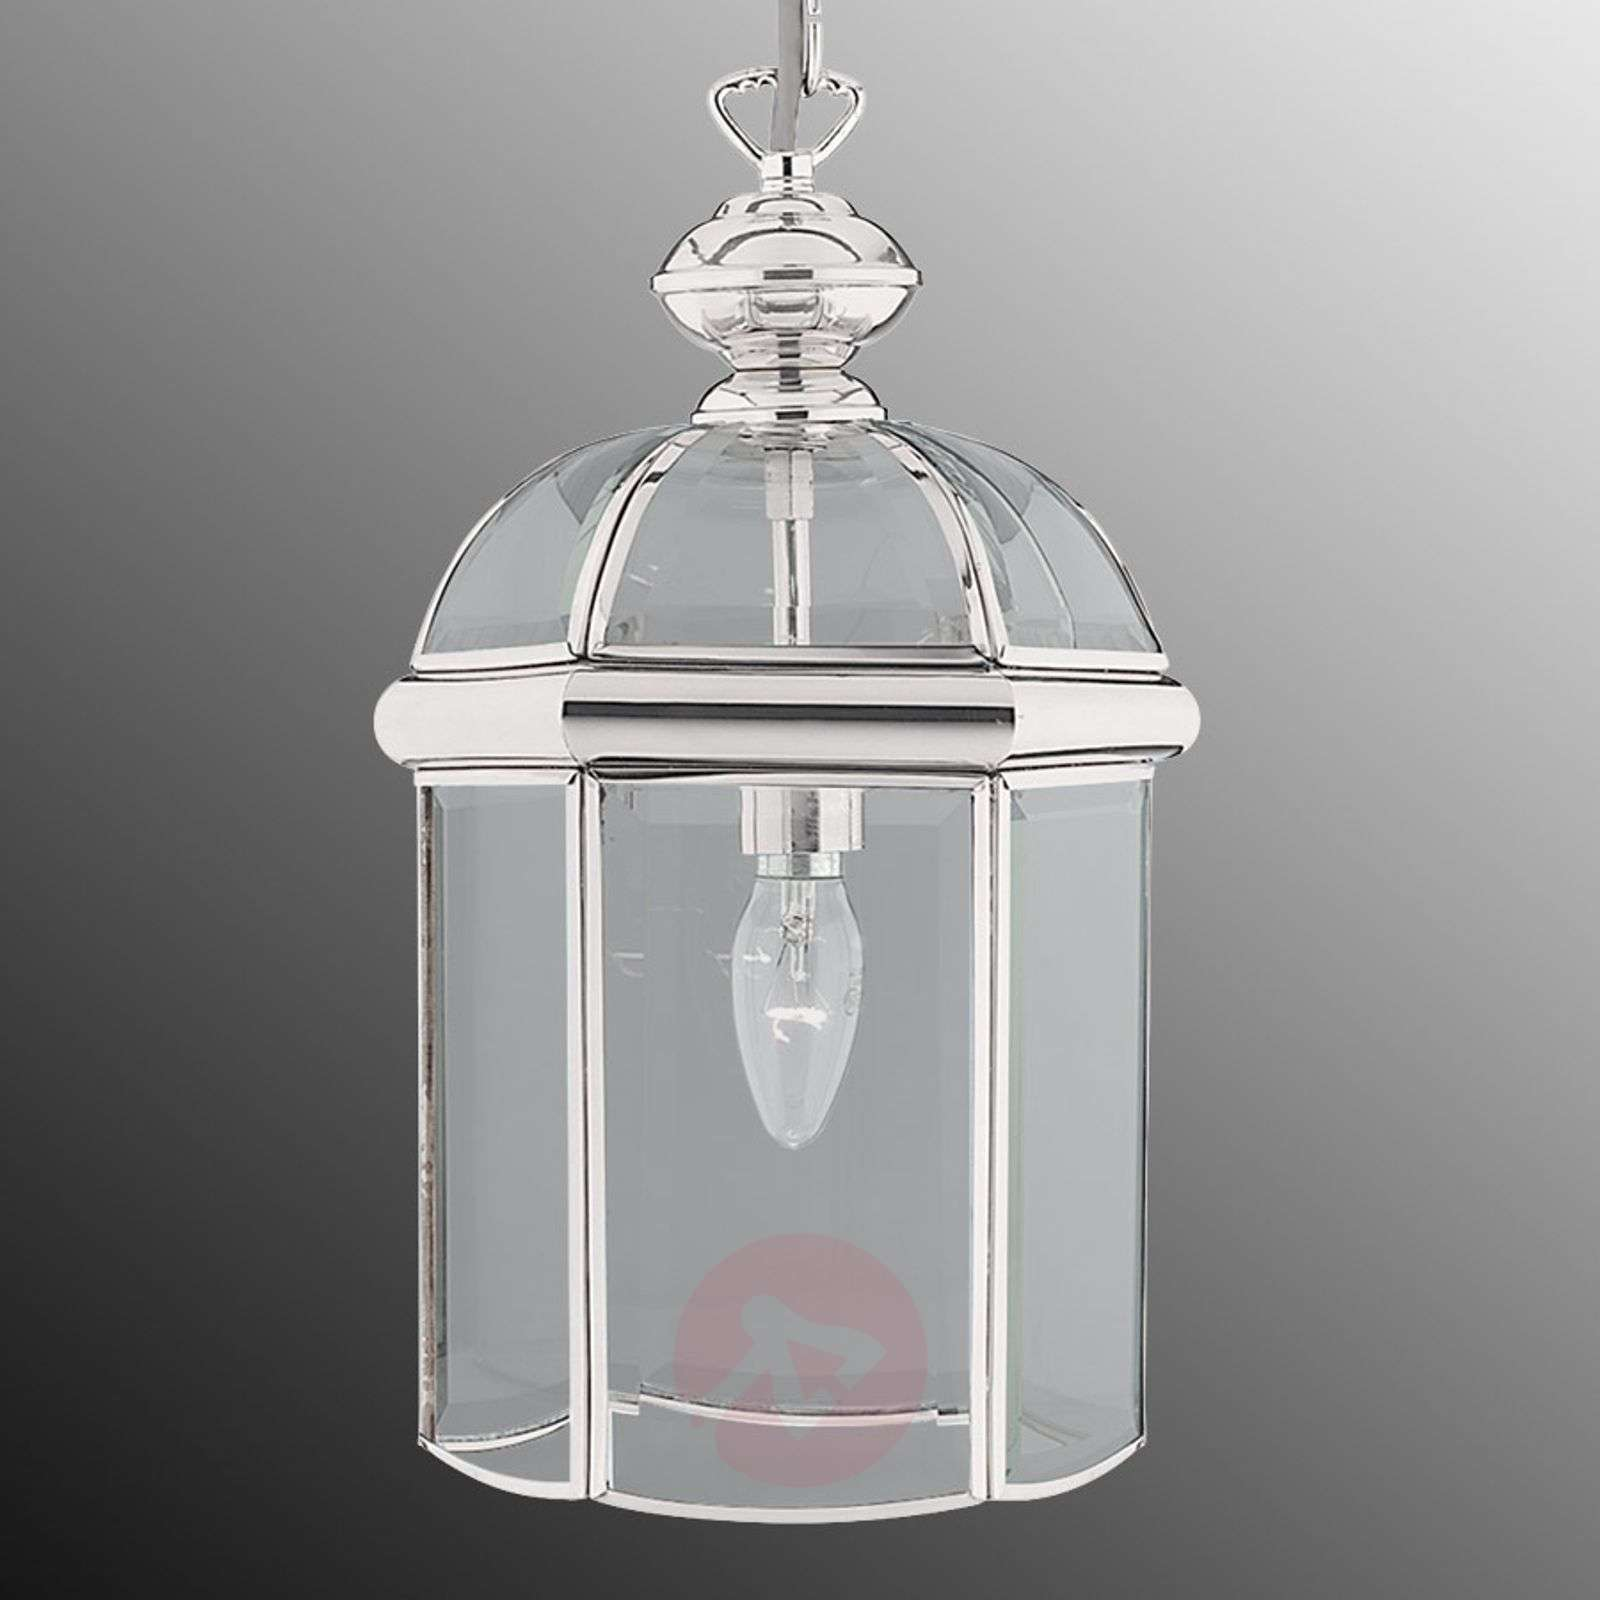 ARLIND hanging light in chrome appearance-8570567-01